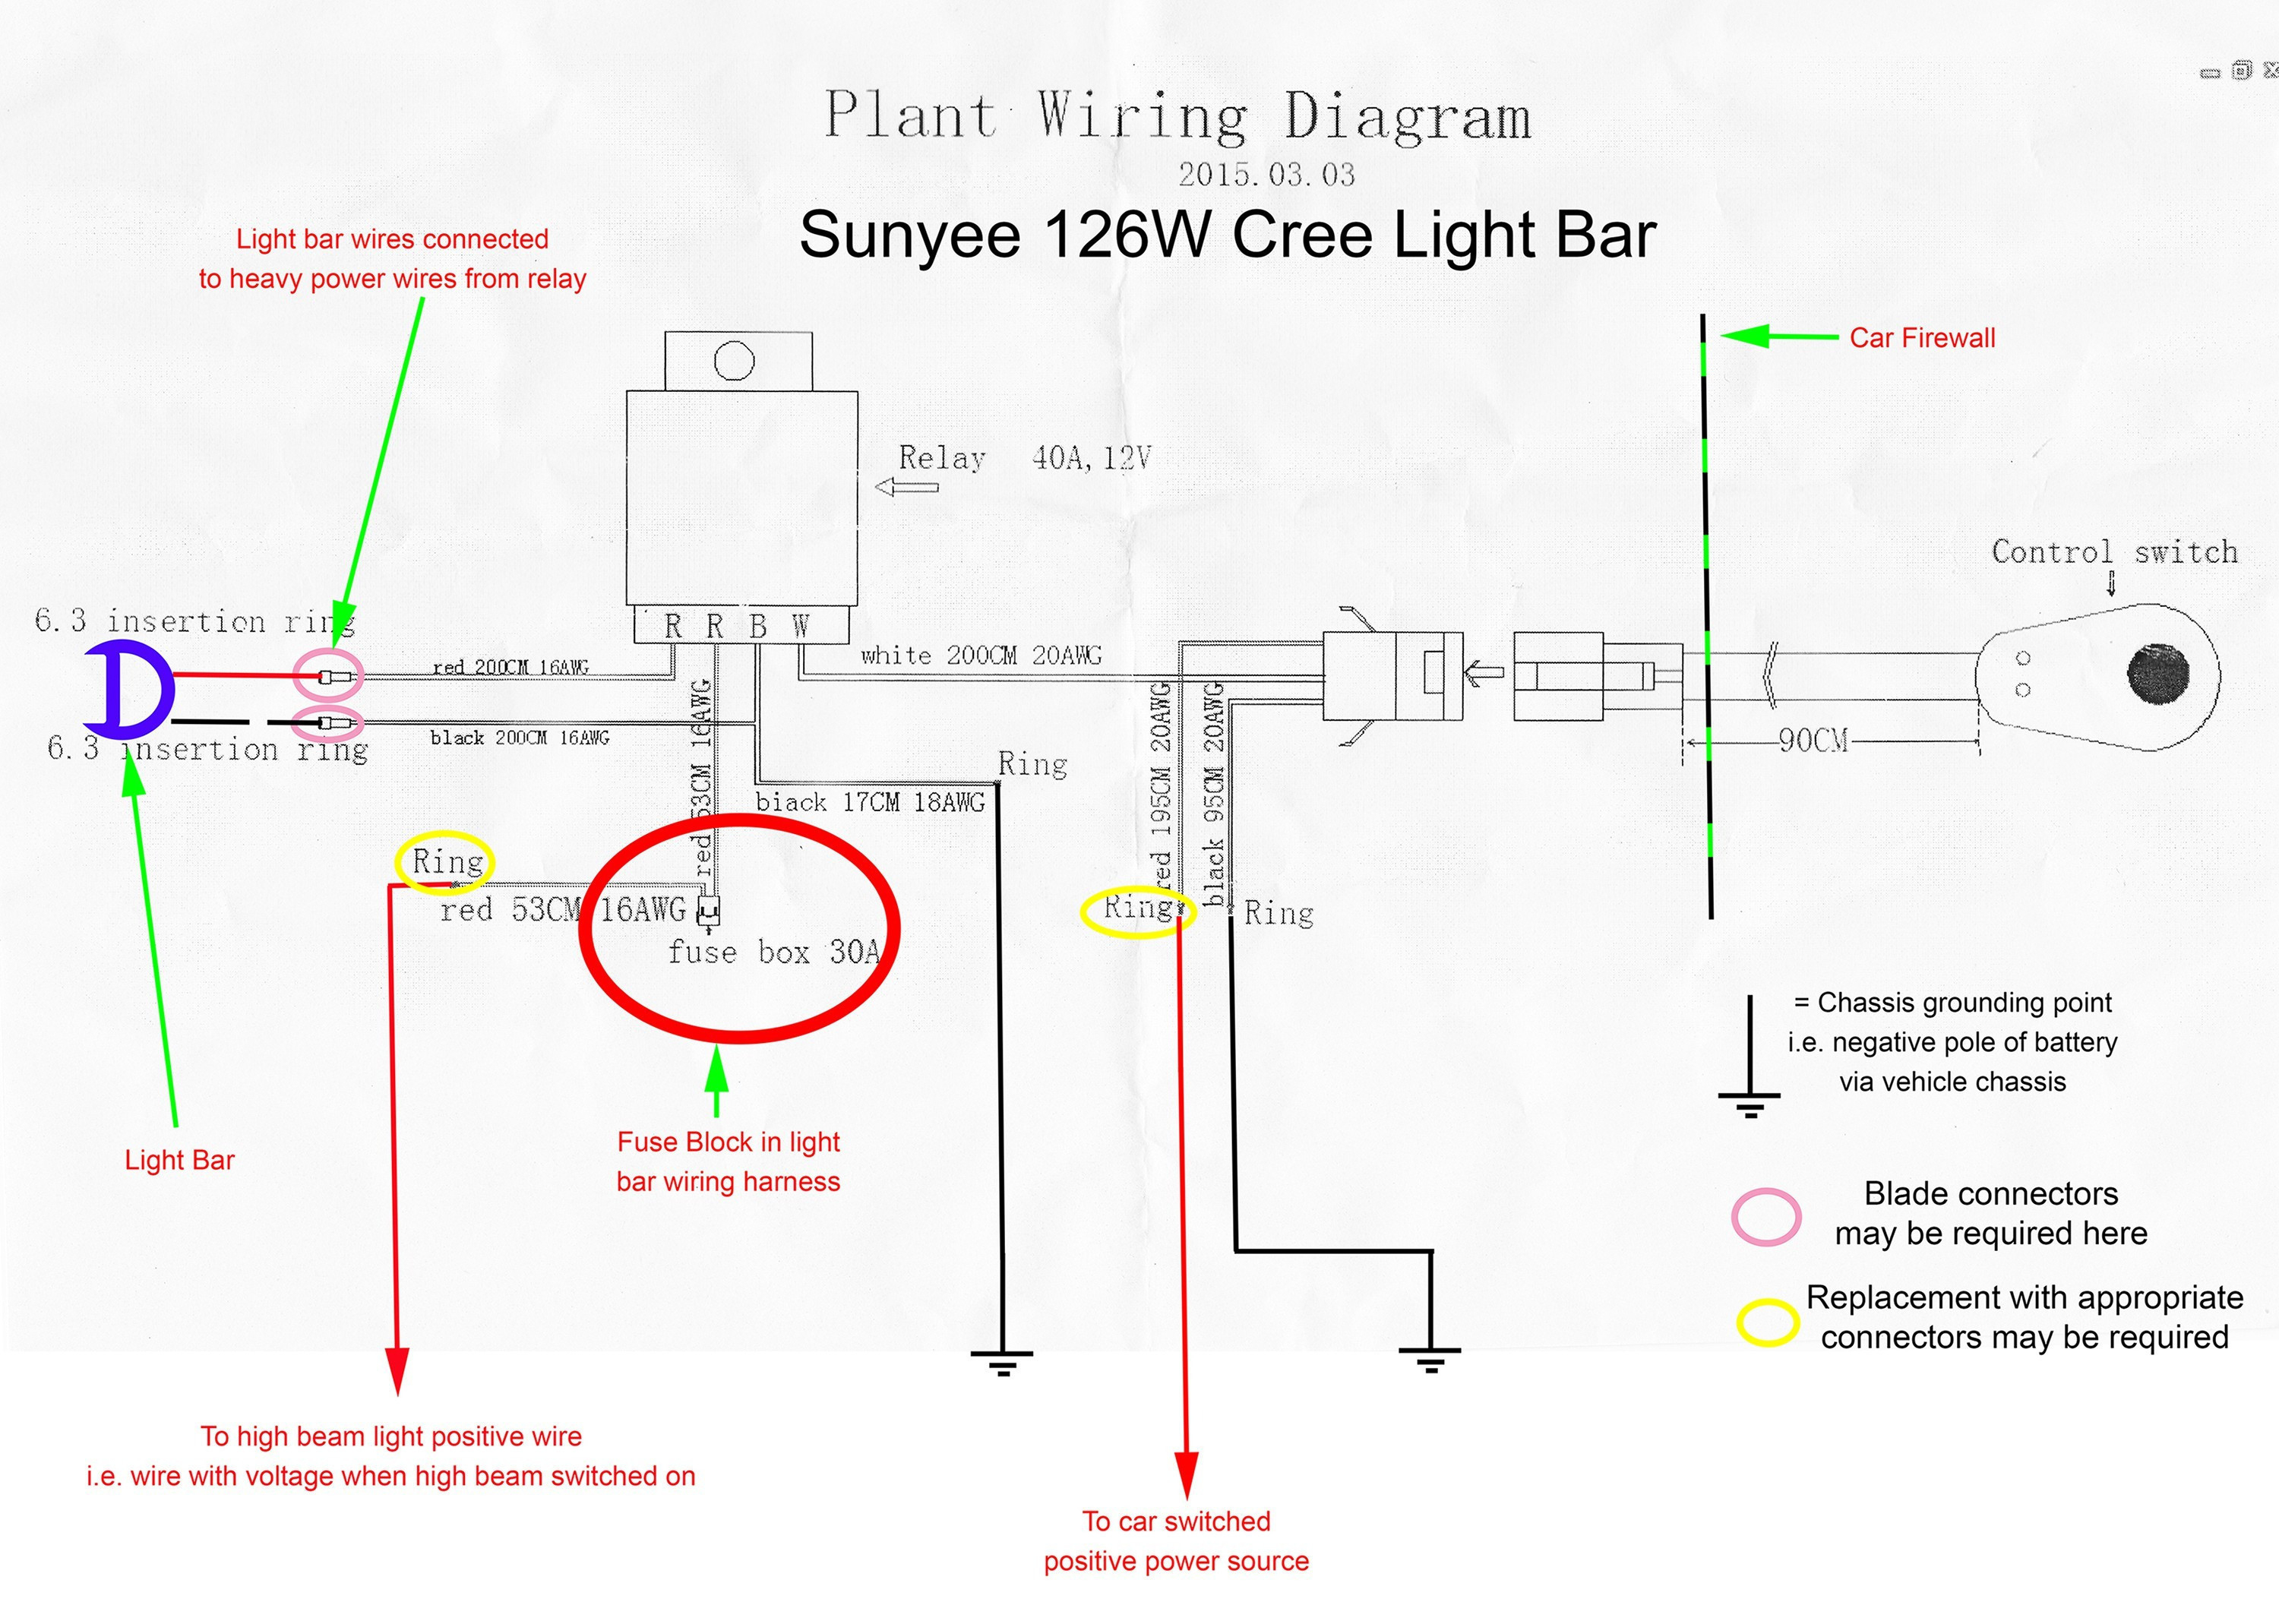 Diagram For Wiring Trailer Lights - Mikulskilawoffices - Wiring Diagram For Trailer Lights Australia